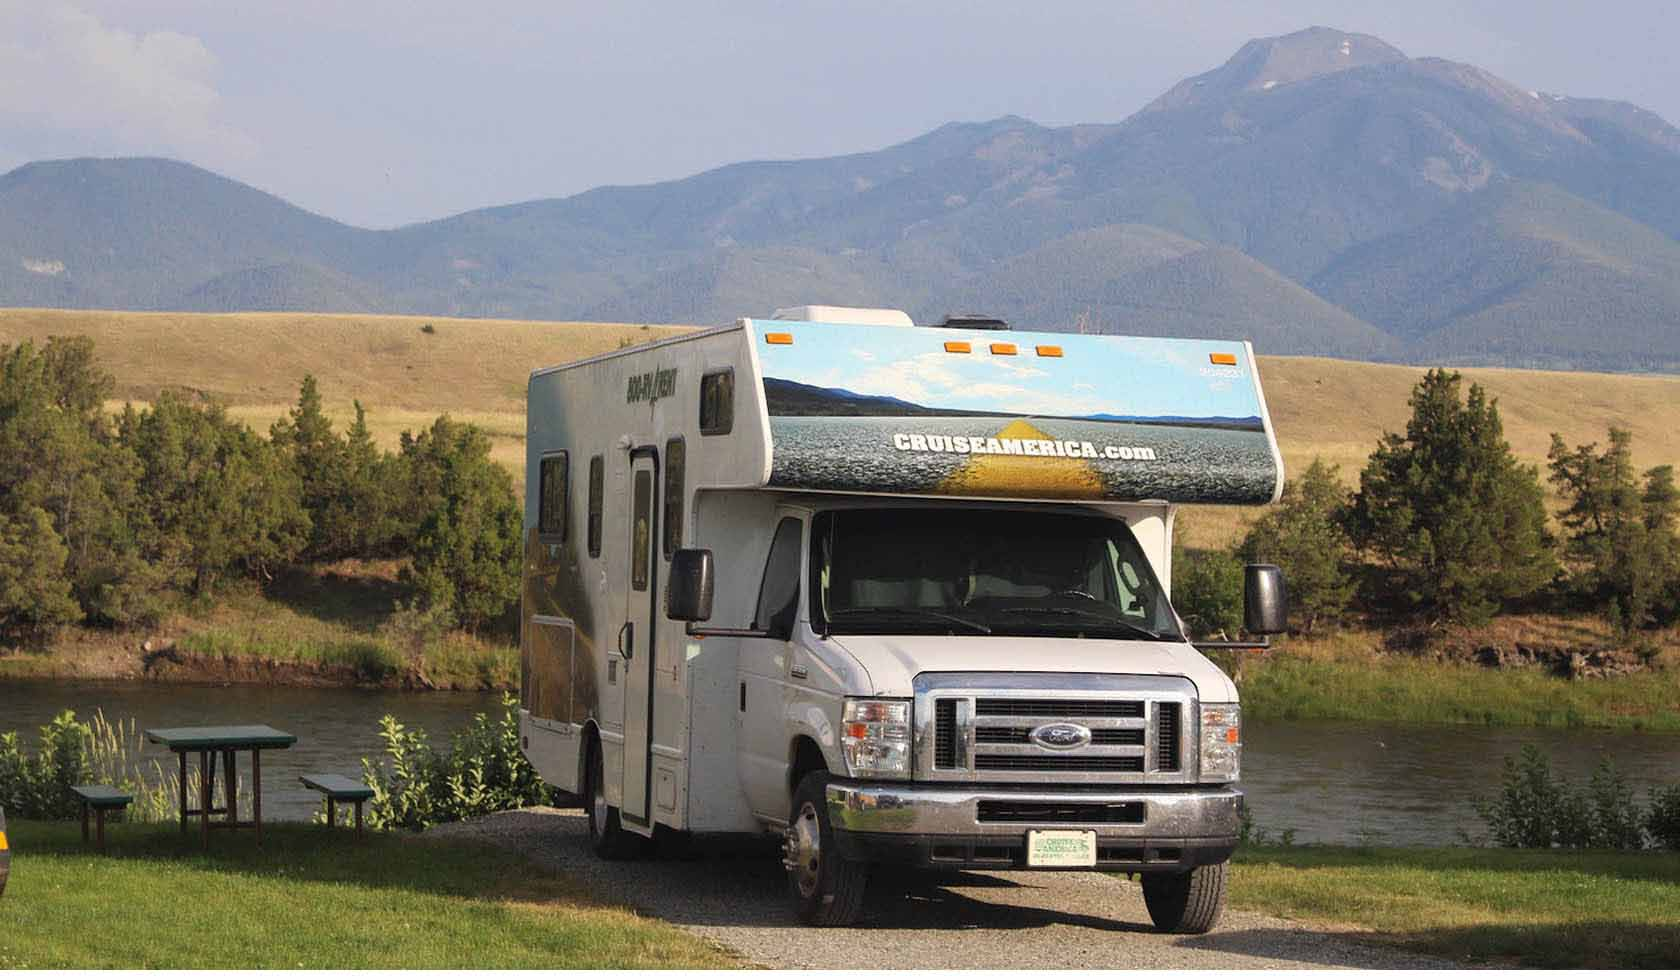 Yellowstone's Edge RV Park profile image